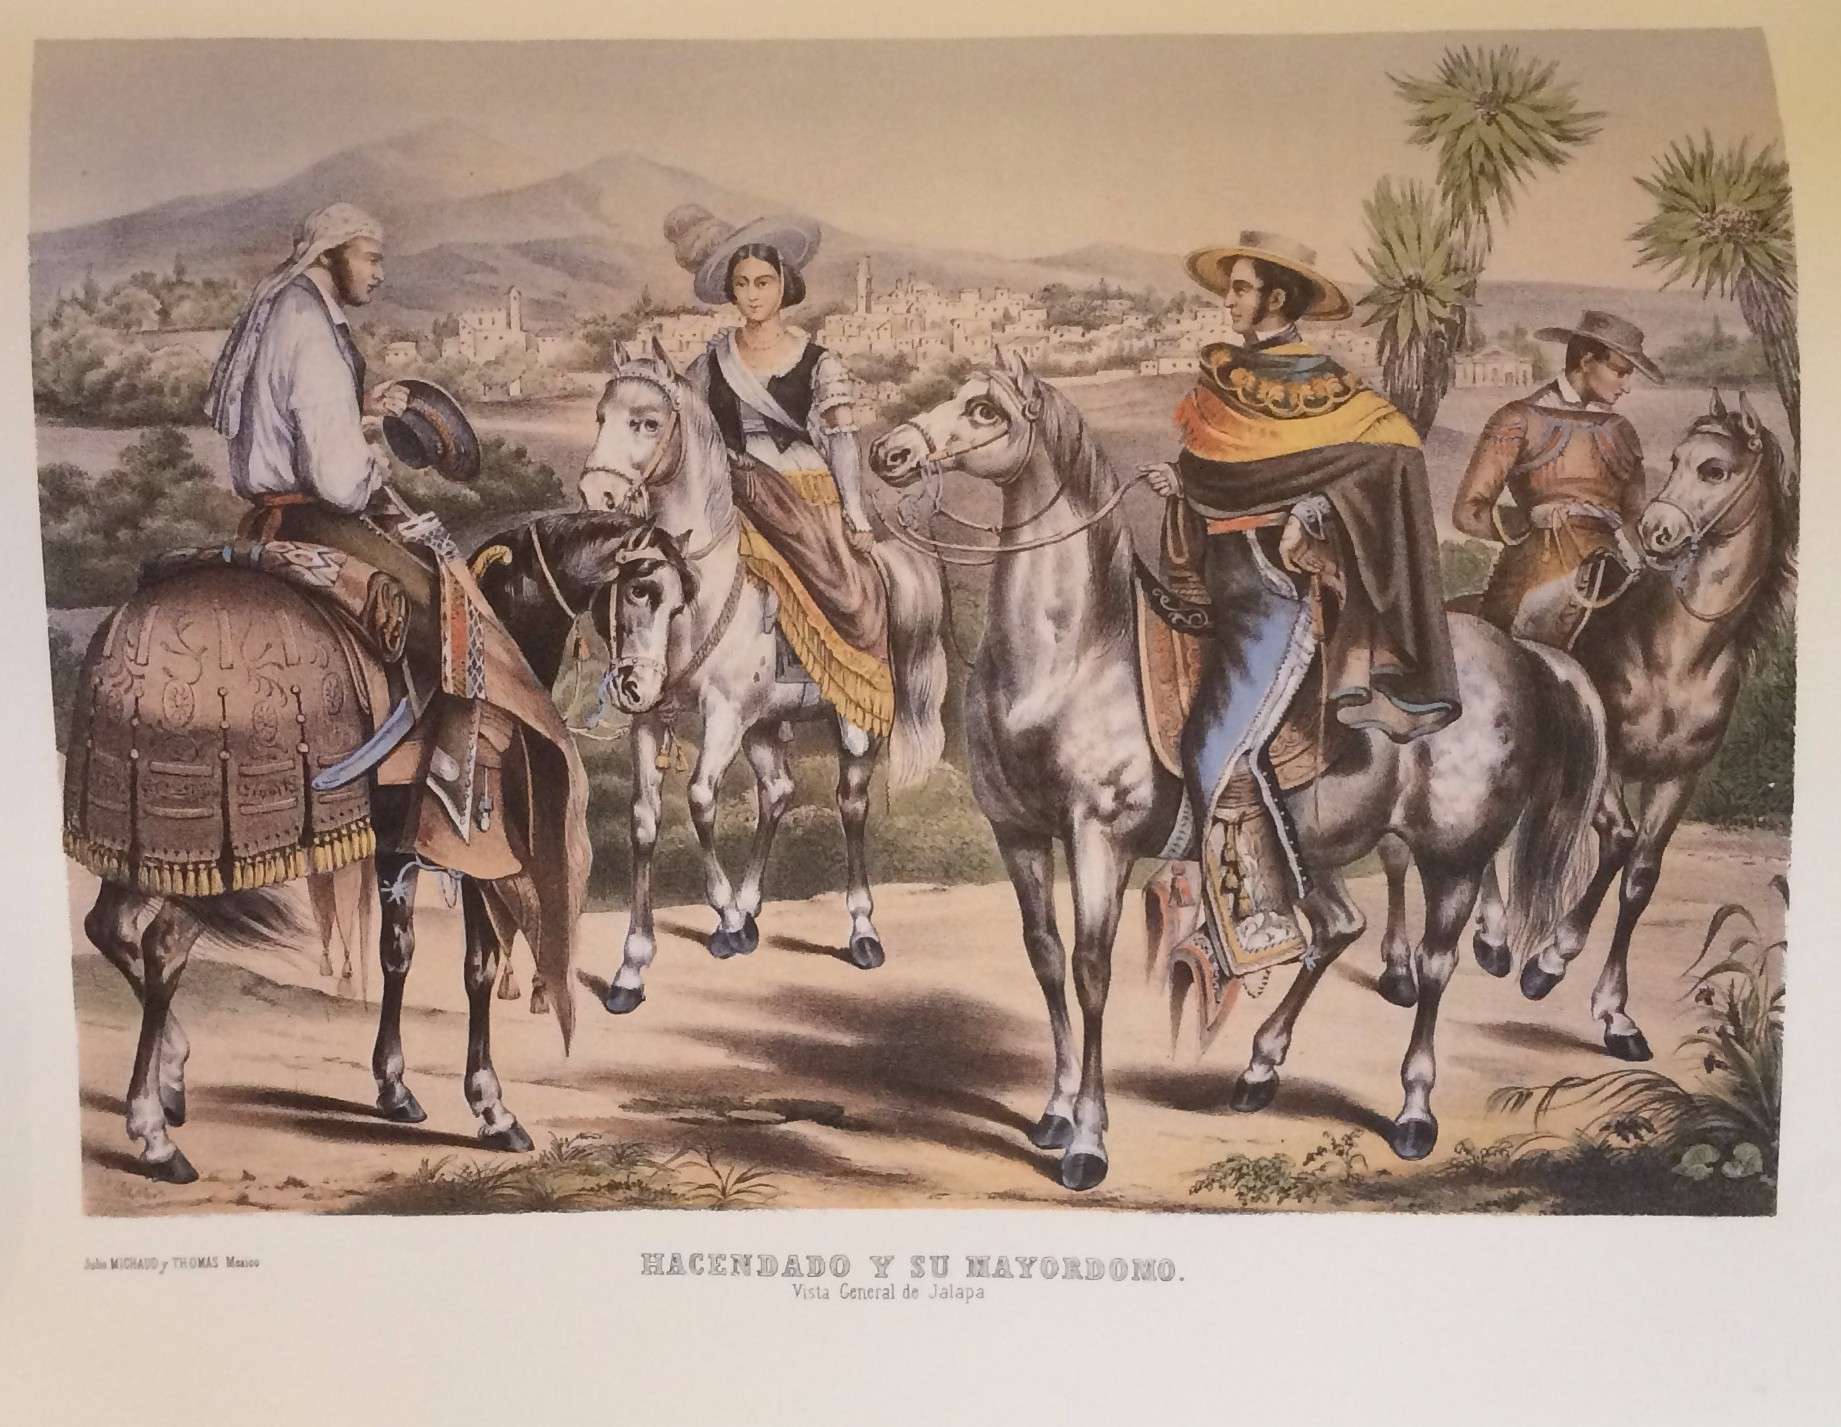 Lithography In Mexico, 1826-1900